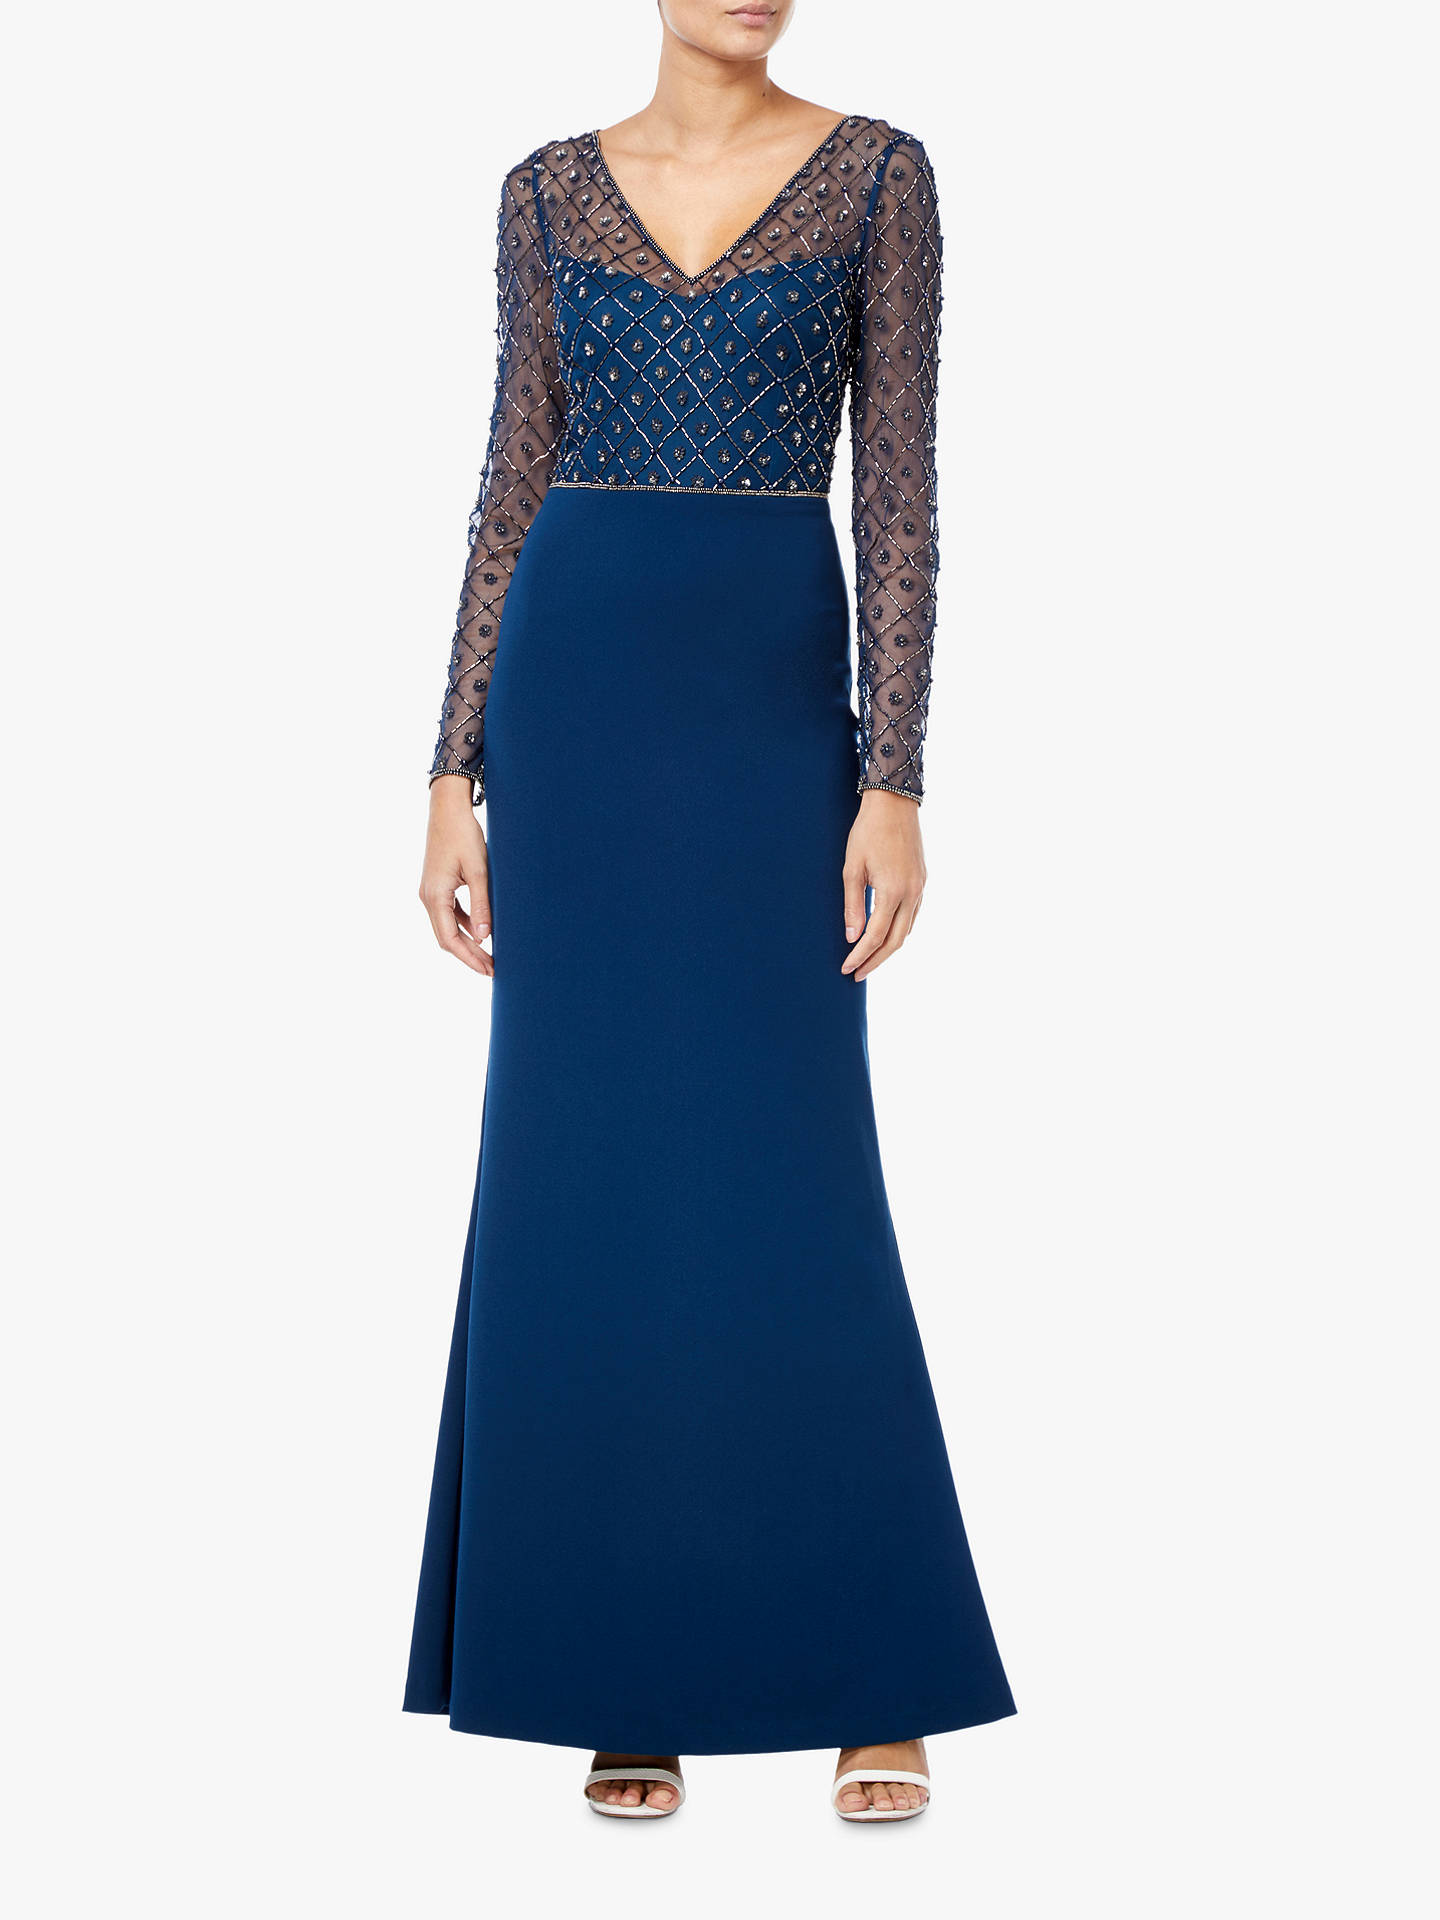 6822dcefc22 Buy Adrianna Papell Crepe Long Dress, Deep Blue, 16 Online at johnlewis.com  ...